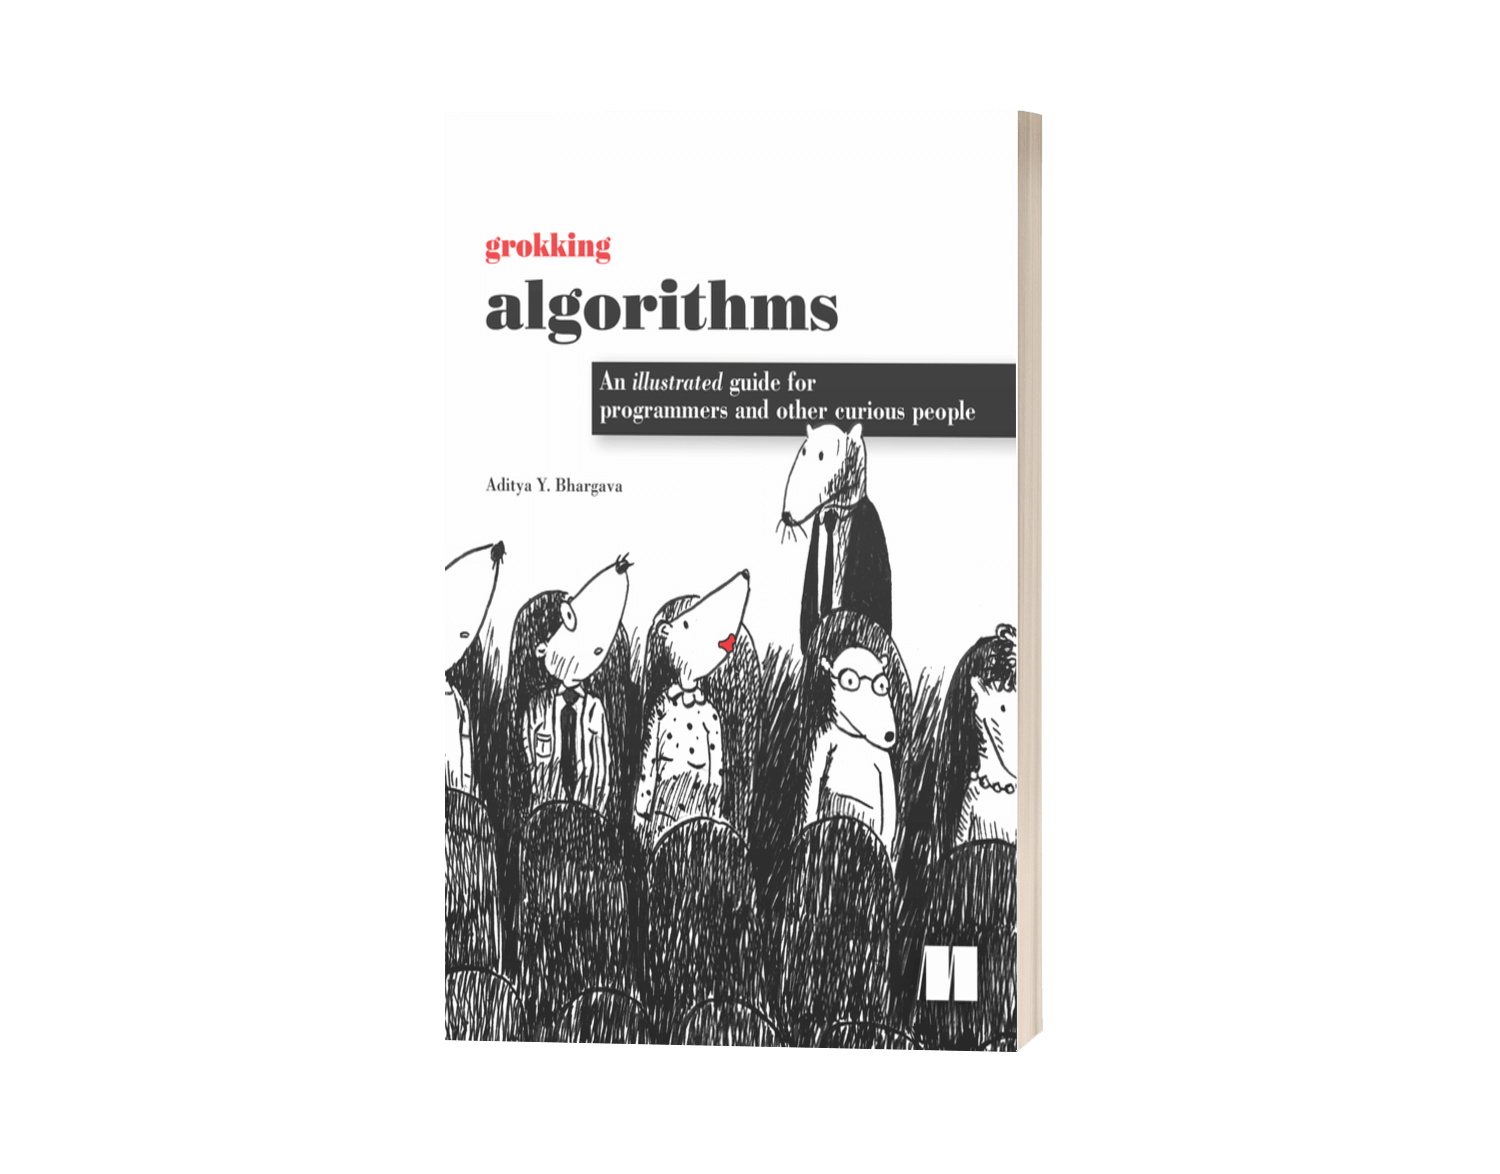 Best Algorithms Book for Interviews: Grokking Algorithms - Grokking Algorithms by Aditya Y Bhargava is, on the surface, a text that teaches classic data structure and algorithm topics. But the book has a catch: it's a joy to read! So much so that I read it for fun before even taking an algorithms class.It turns out that cute illustrations are novel. Bringing in that element of the unexpected — along with plain good technical writing — made Grokking Algorithms a joy to read.